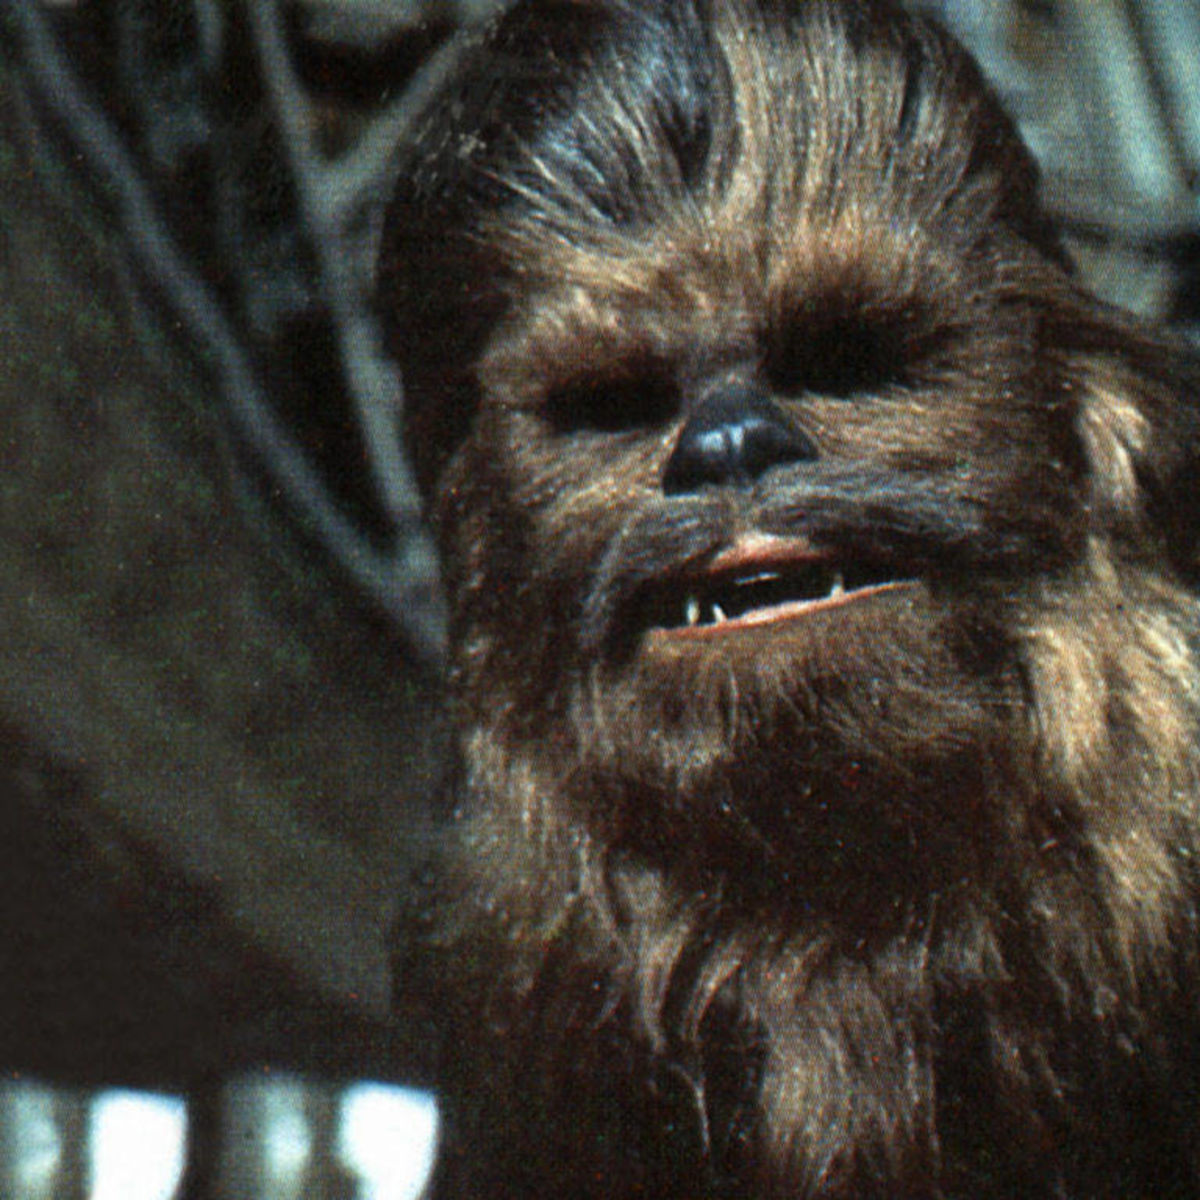 little known sci fi fact studio execs pushed for chewbacca to wear